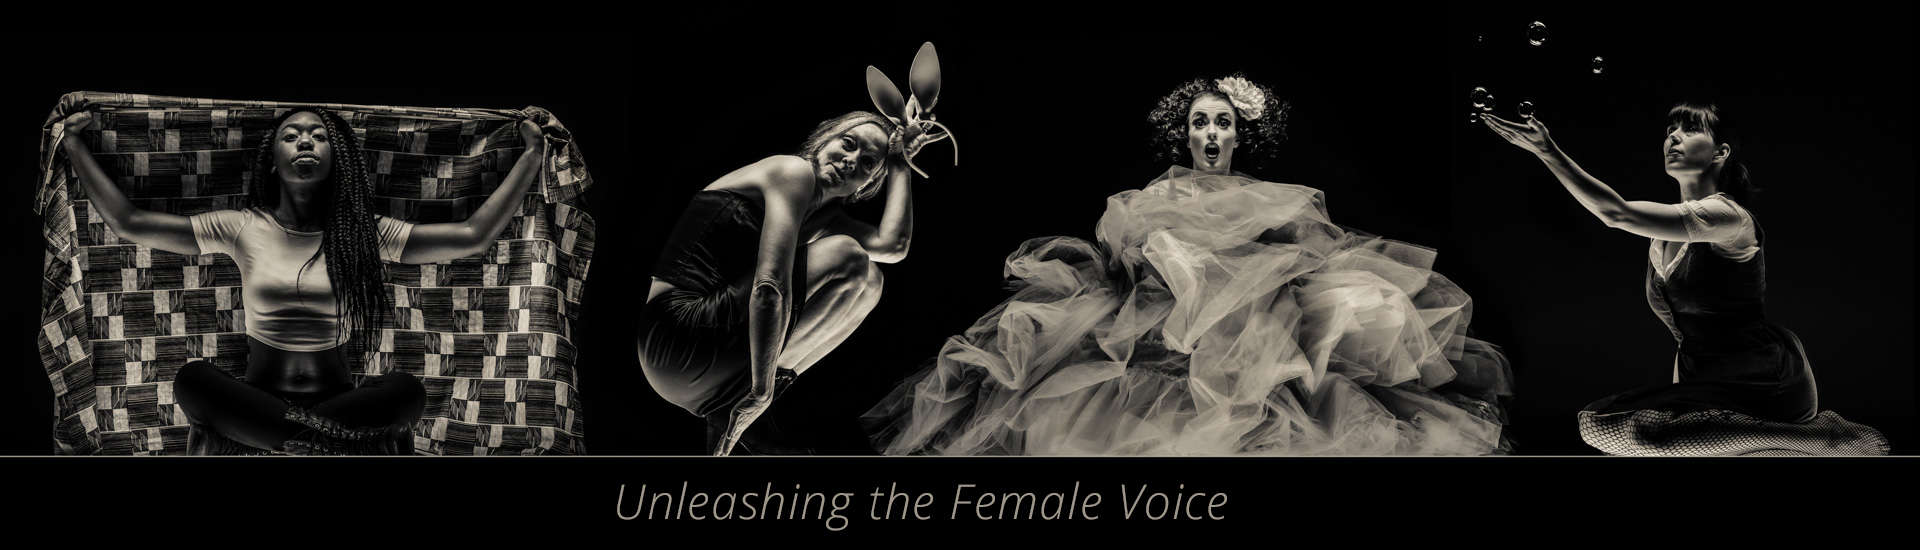 Unleashing_the_Female_Voice